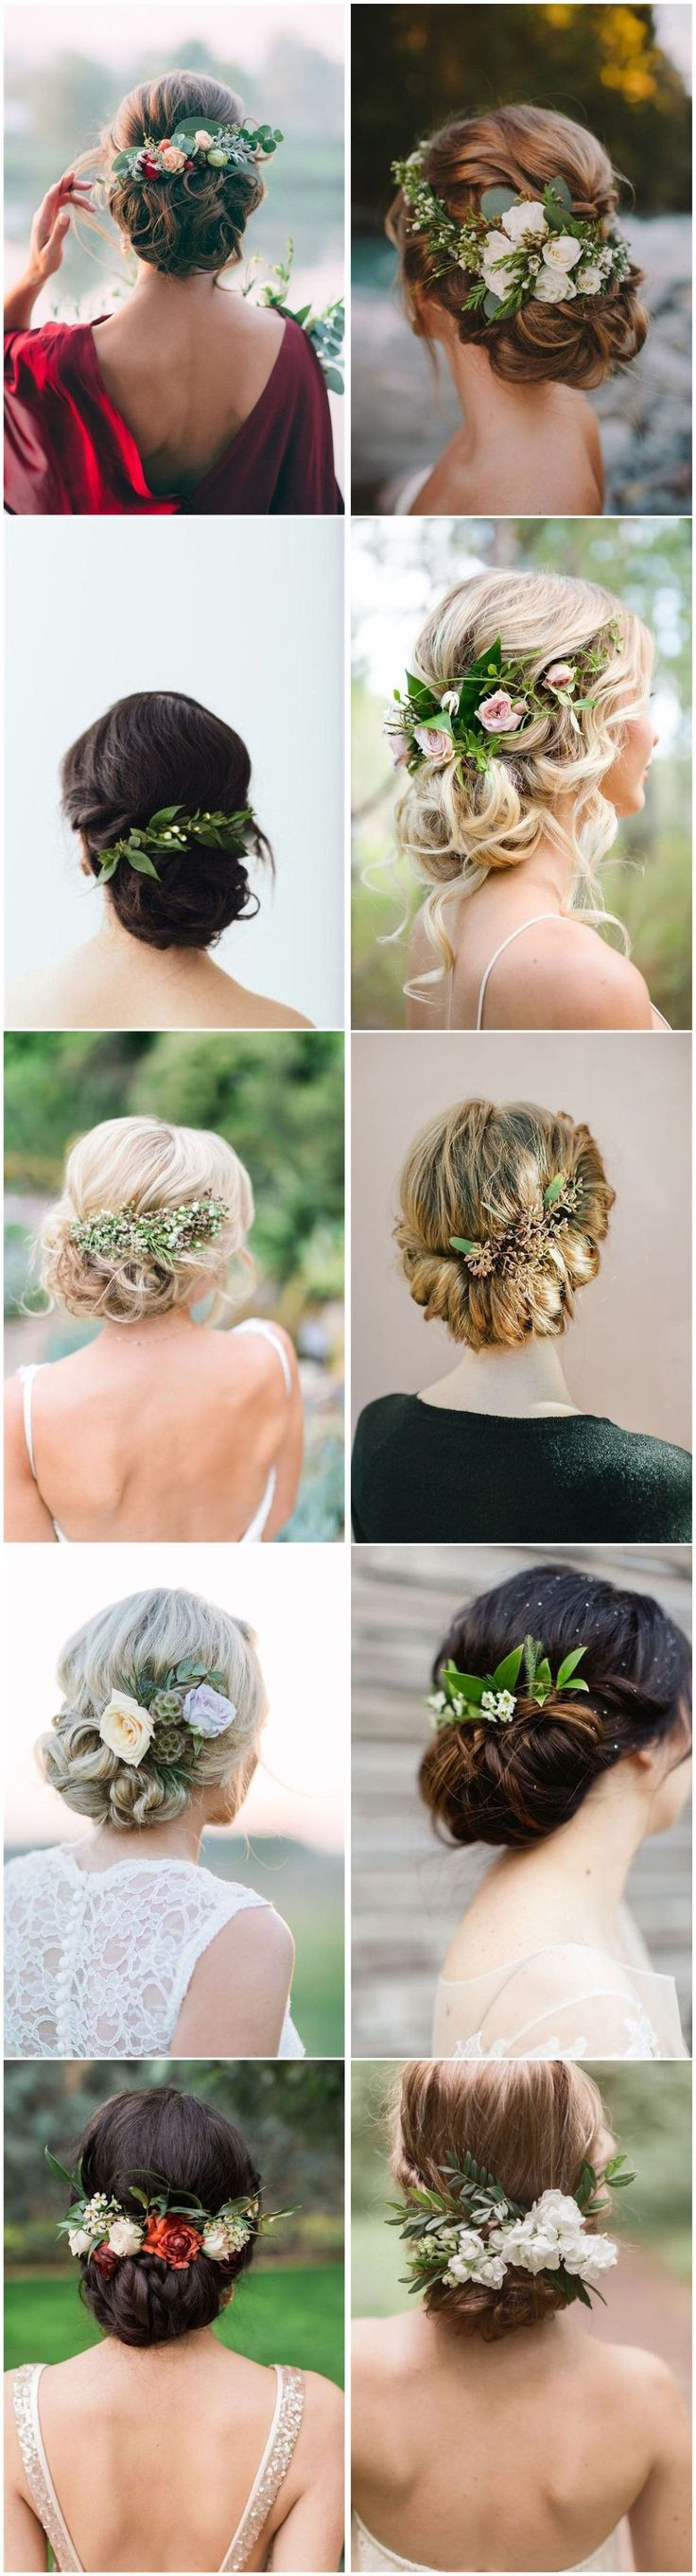 best hairstyles for brides images on pinterest bridal